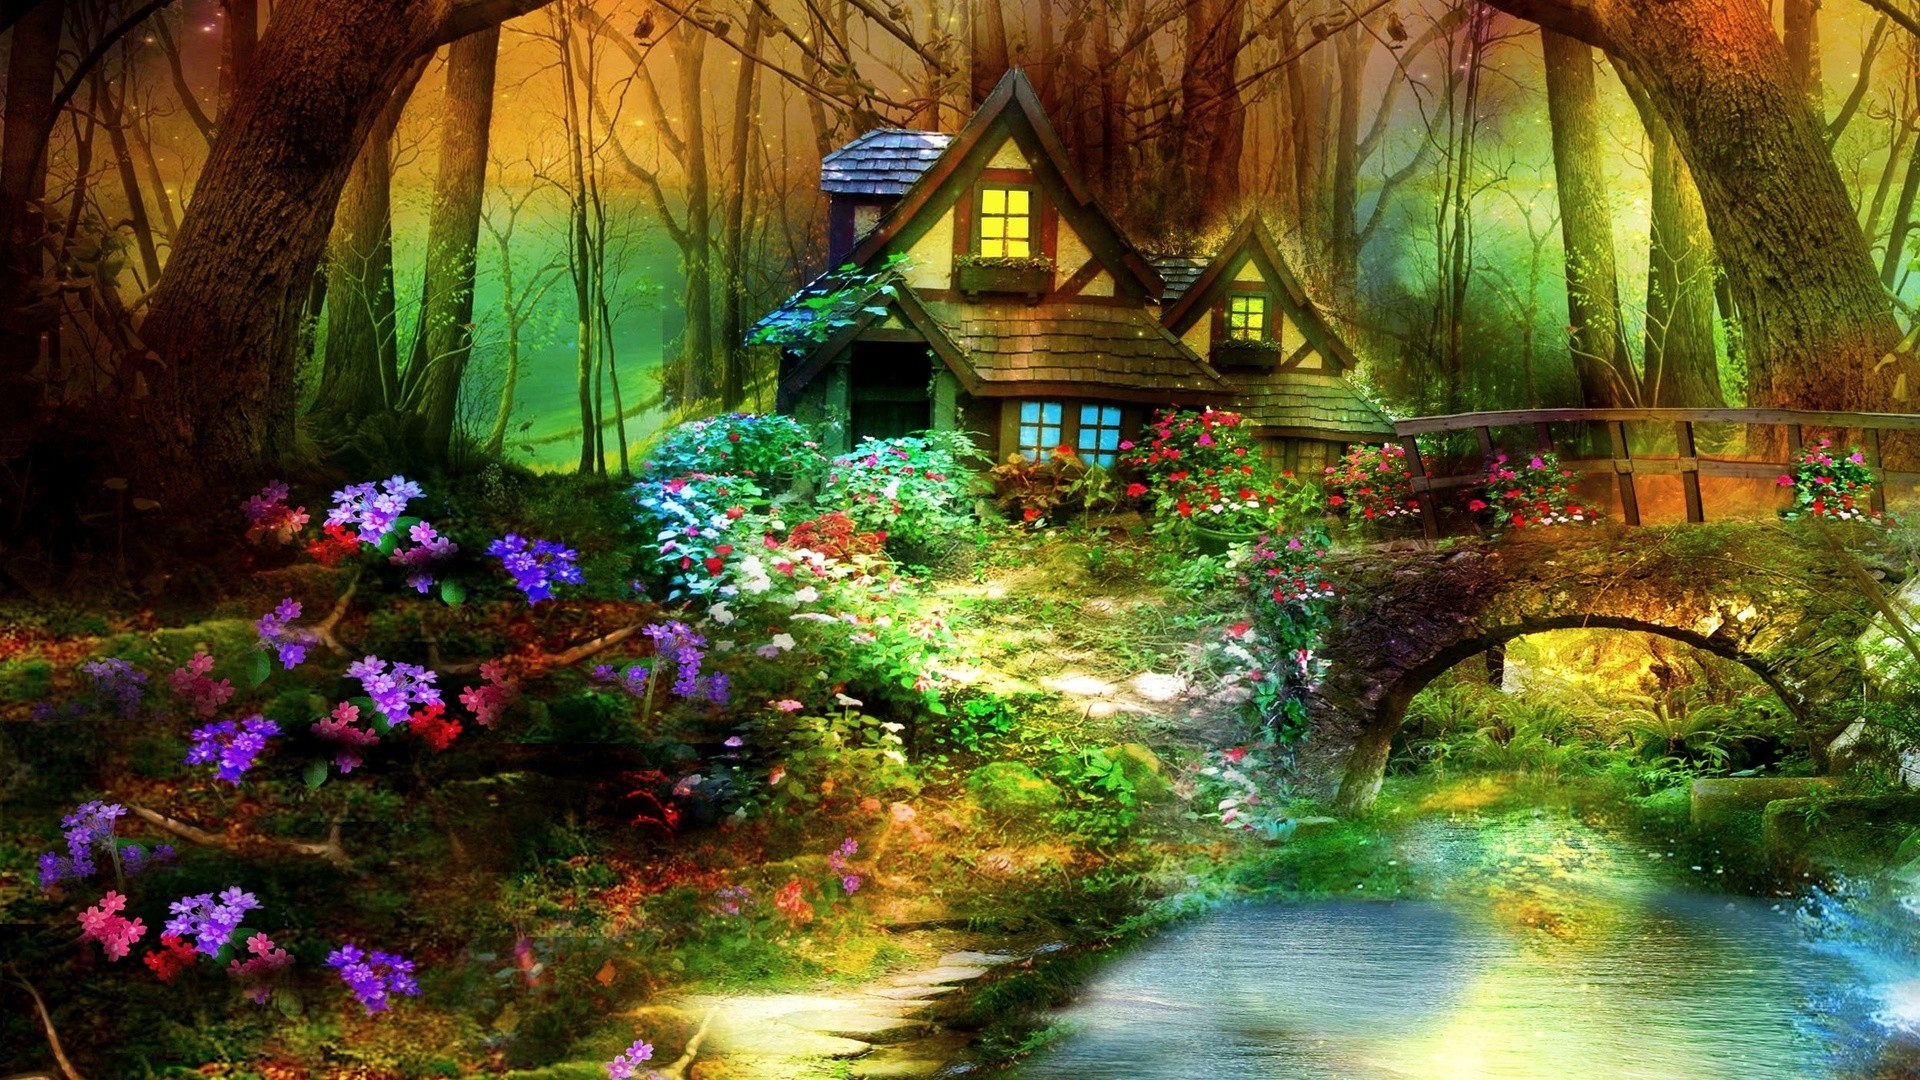 1920x1080  Magic House, Magic Home, Magic Fairy Forest House Wallpapers .